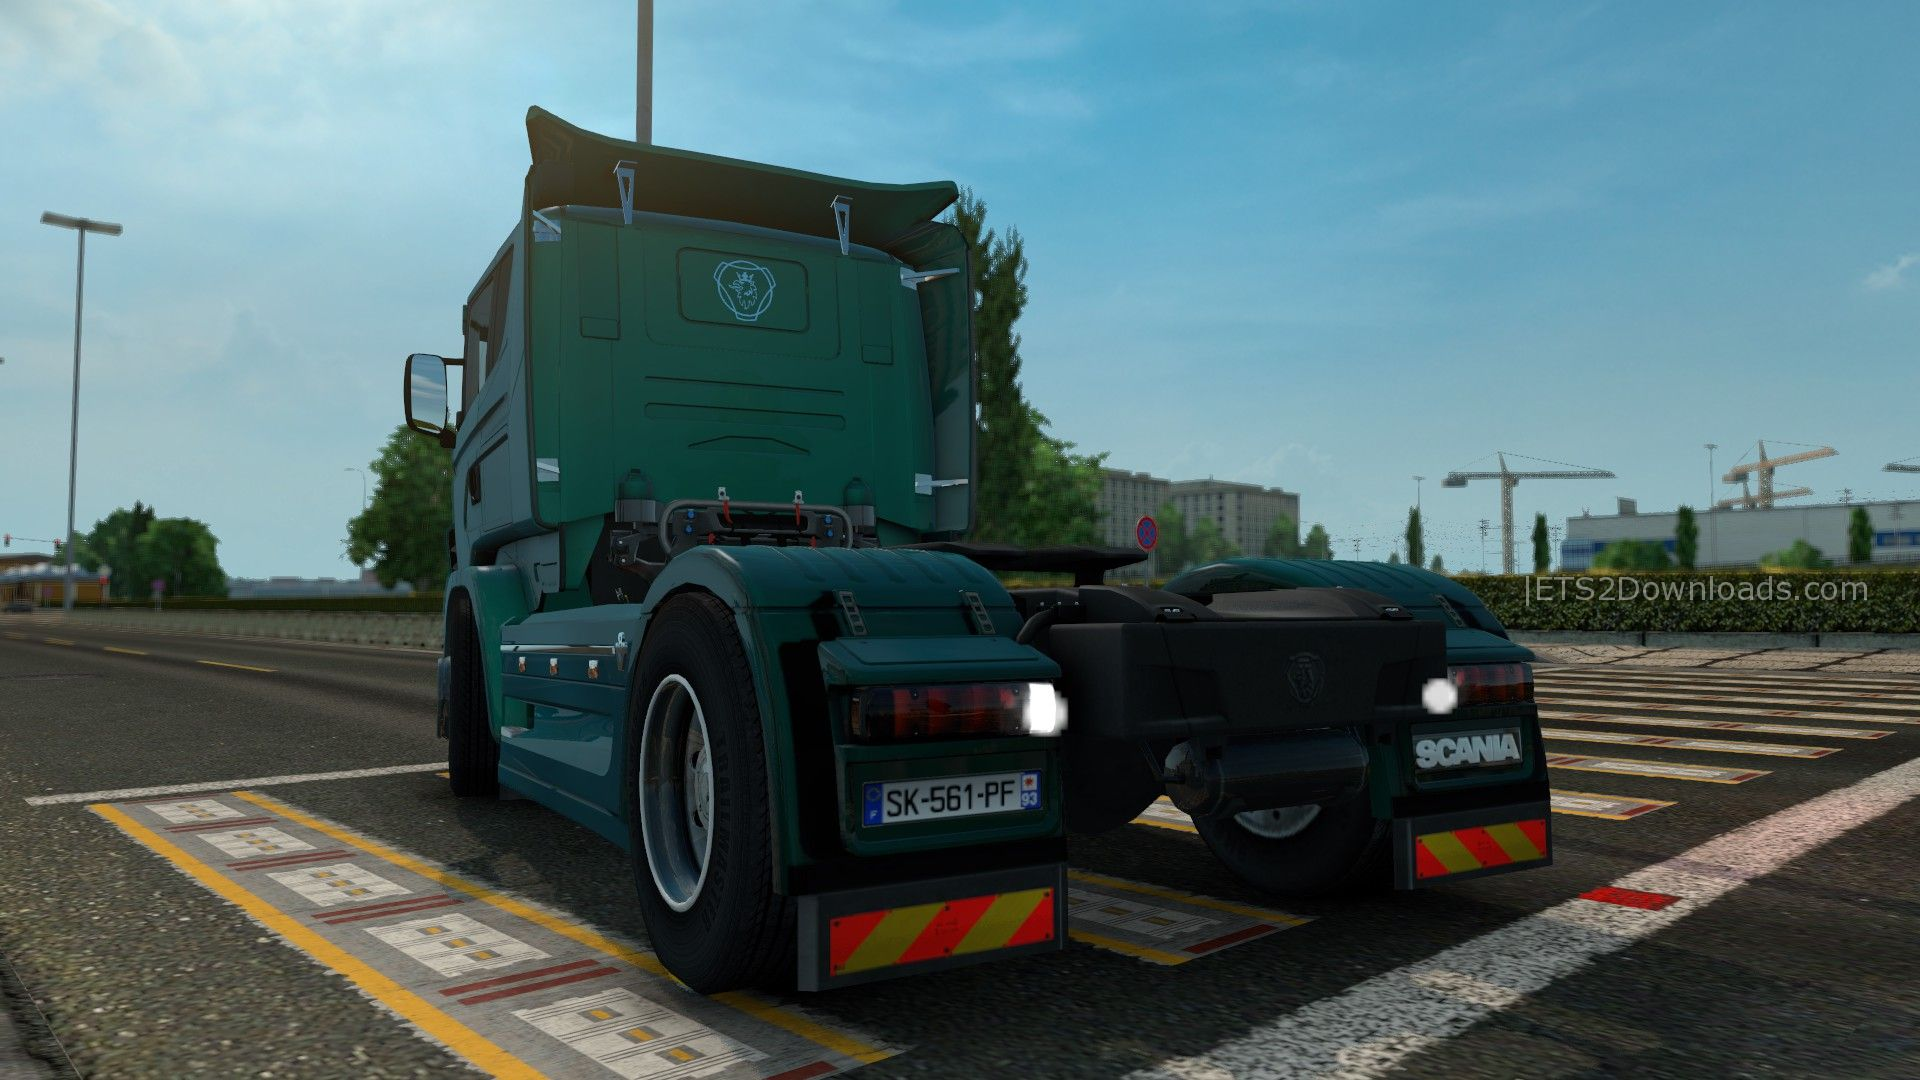 scania-illegal-v8-4